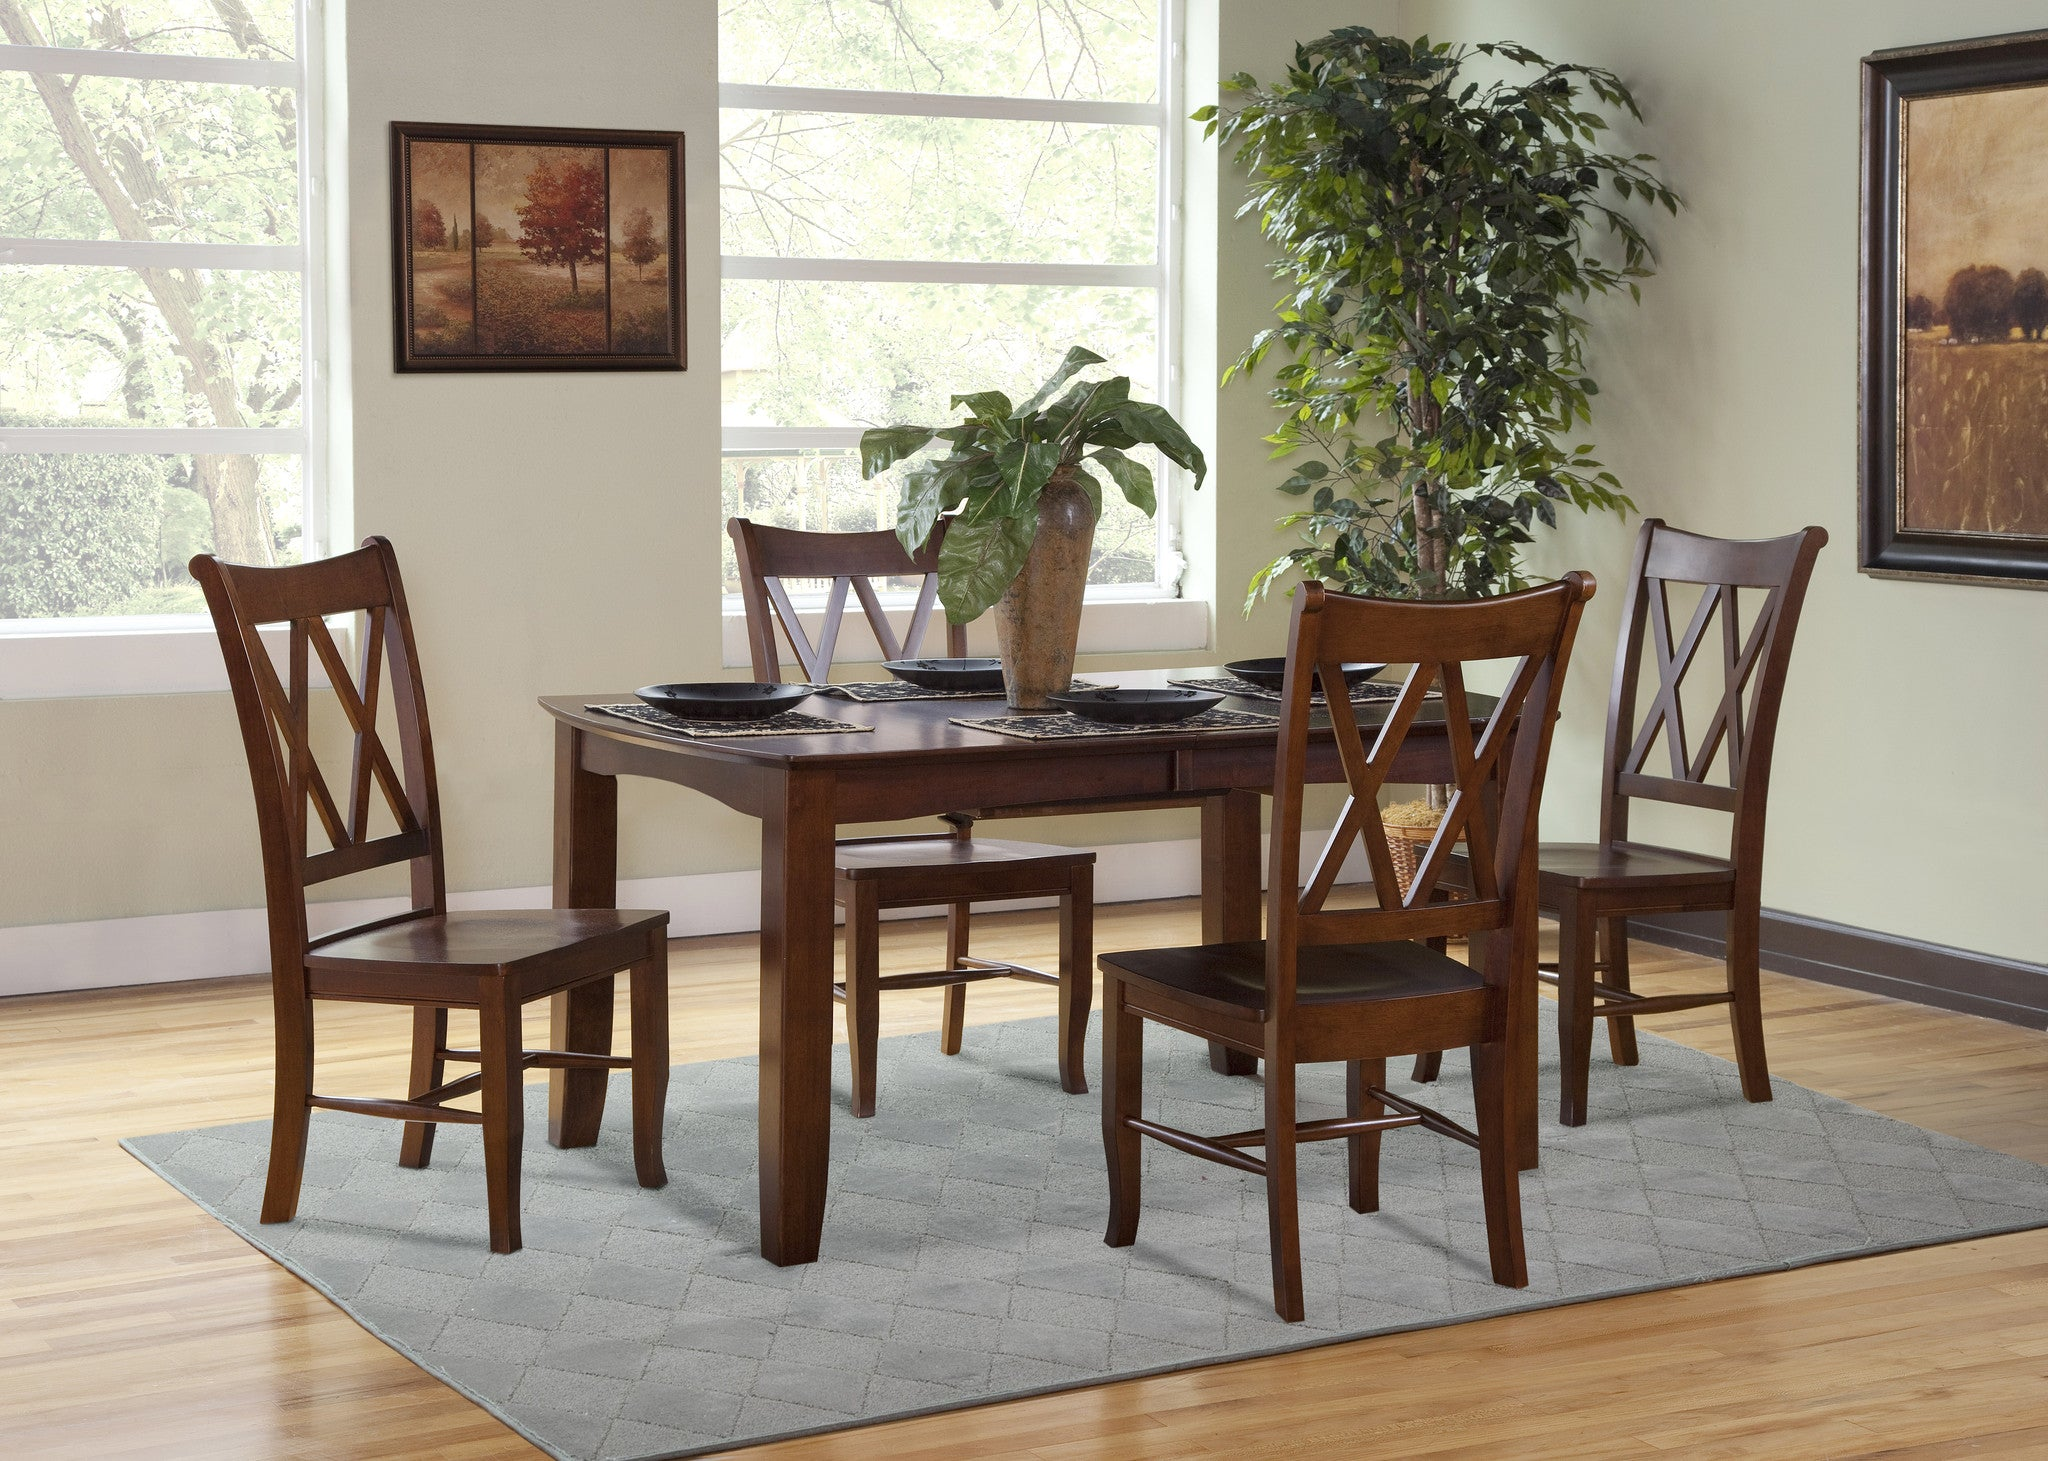 x back dining chairs. Double X Back Hardwood Dining Chairs - 2 Pack UnfinishedFurnitureExpo